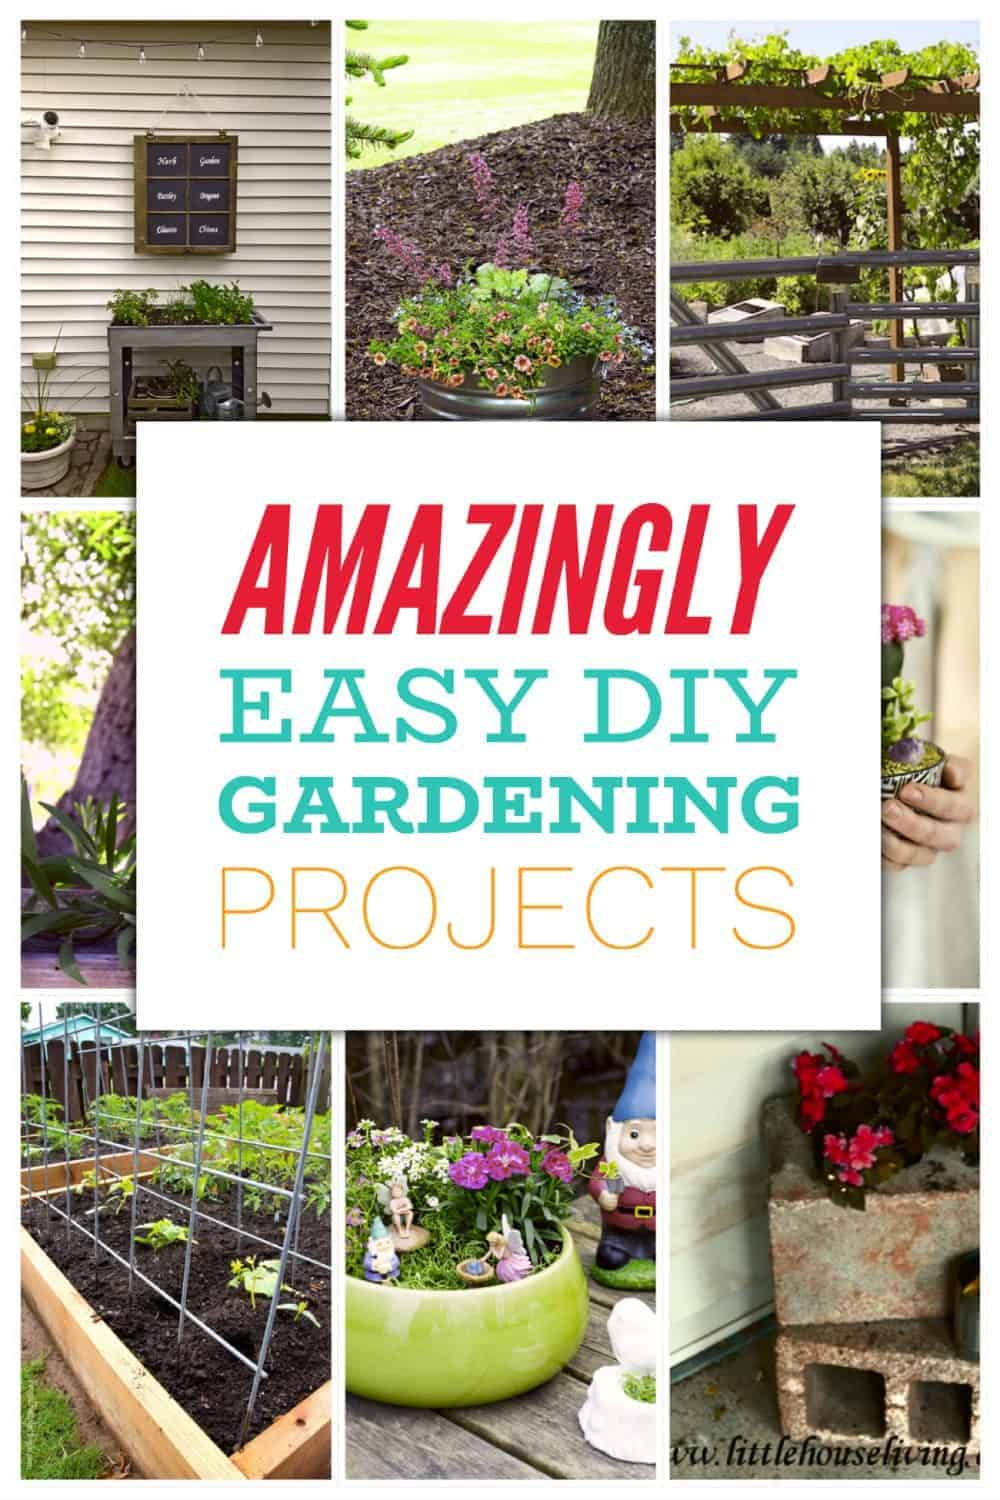 10 Absolutely Crazy Easy DIY Gardening Ideas You MUST Try!